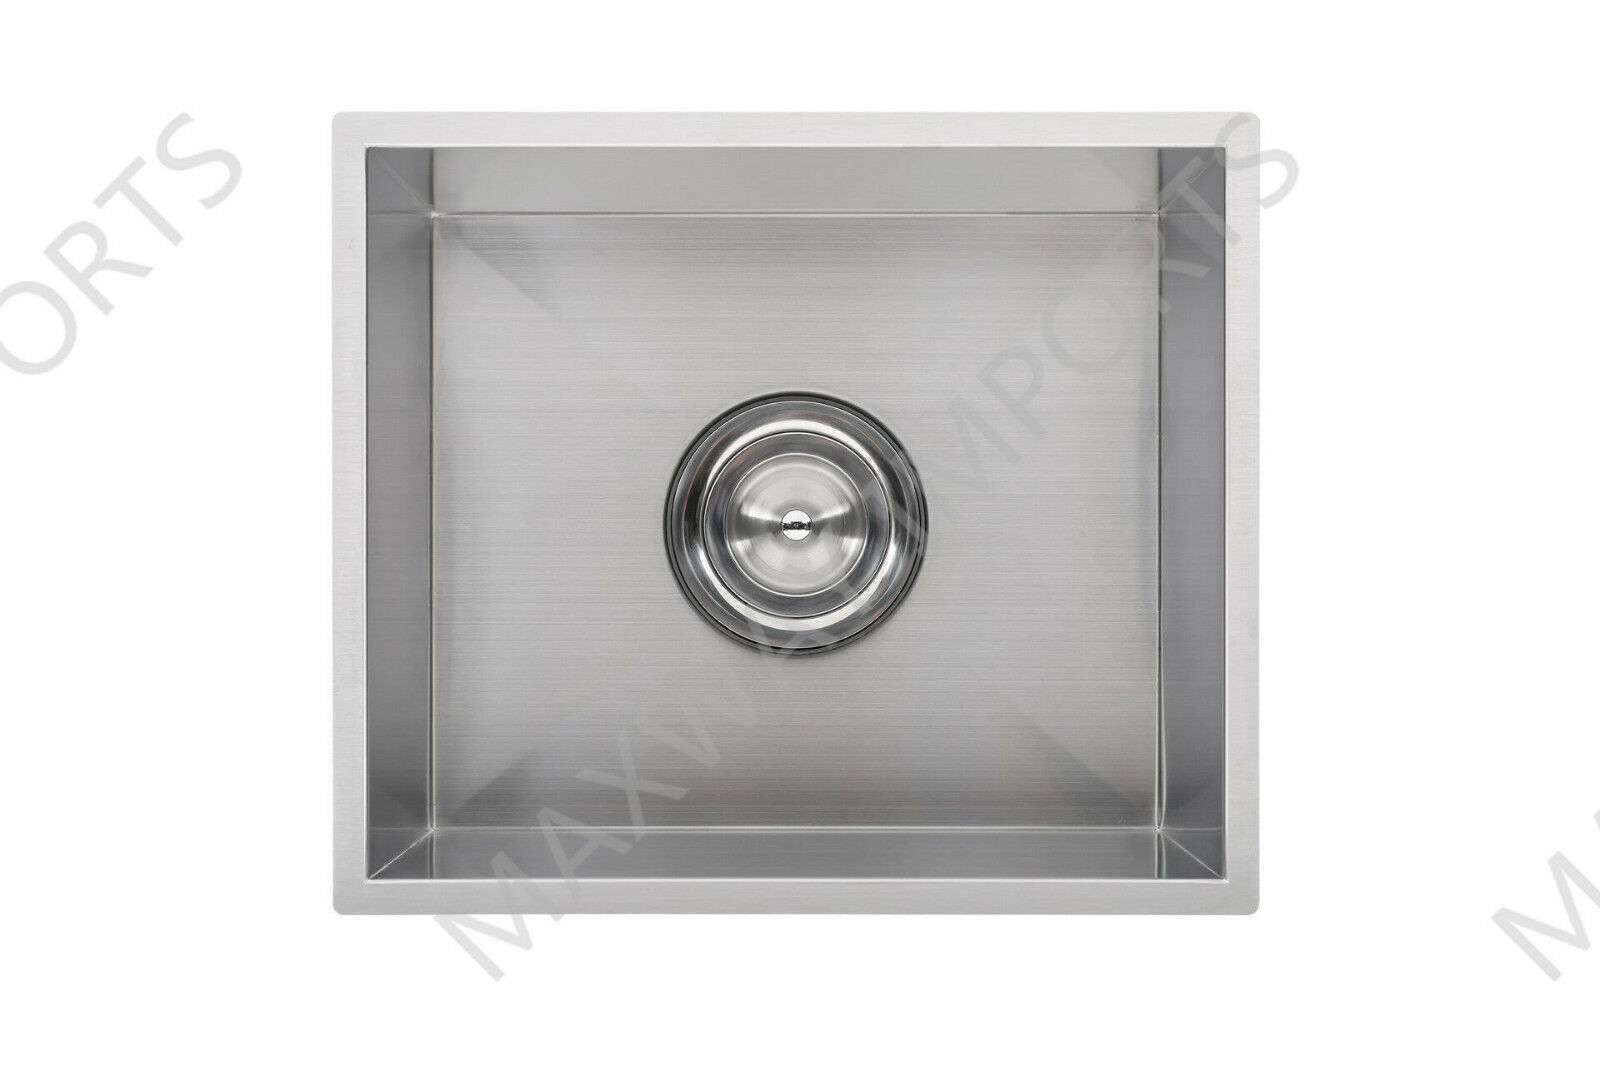 """New 304 Stainless Steel Under mount Single Bowl  Bar Sink 15/""""X13/"""""""